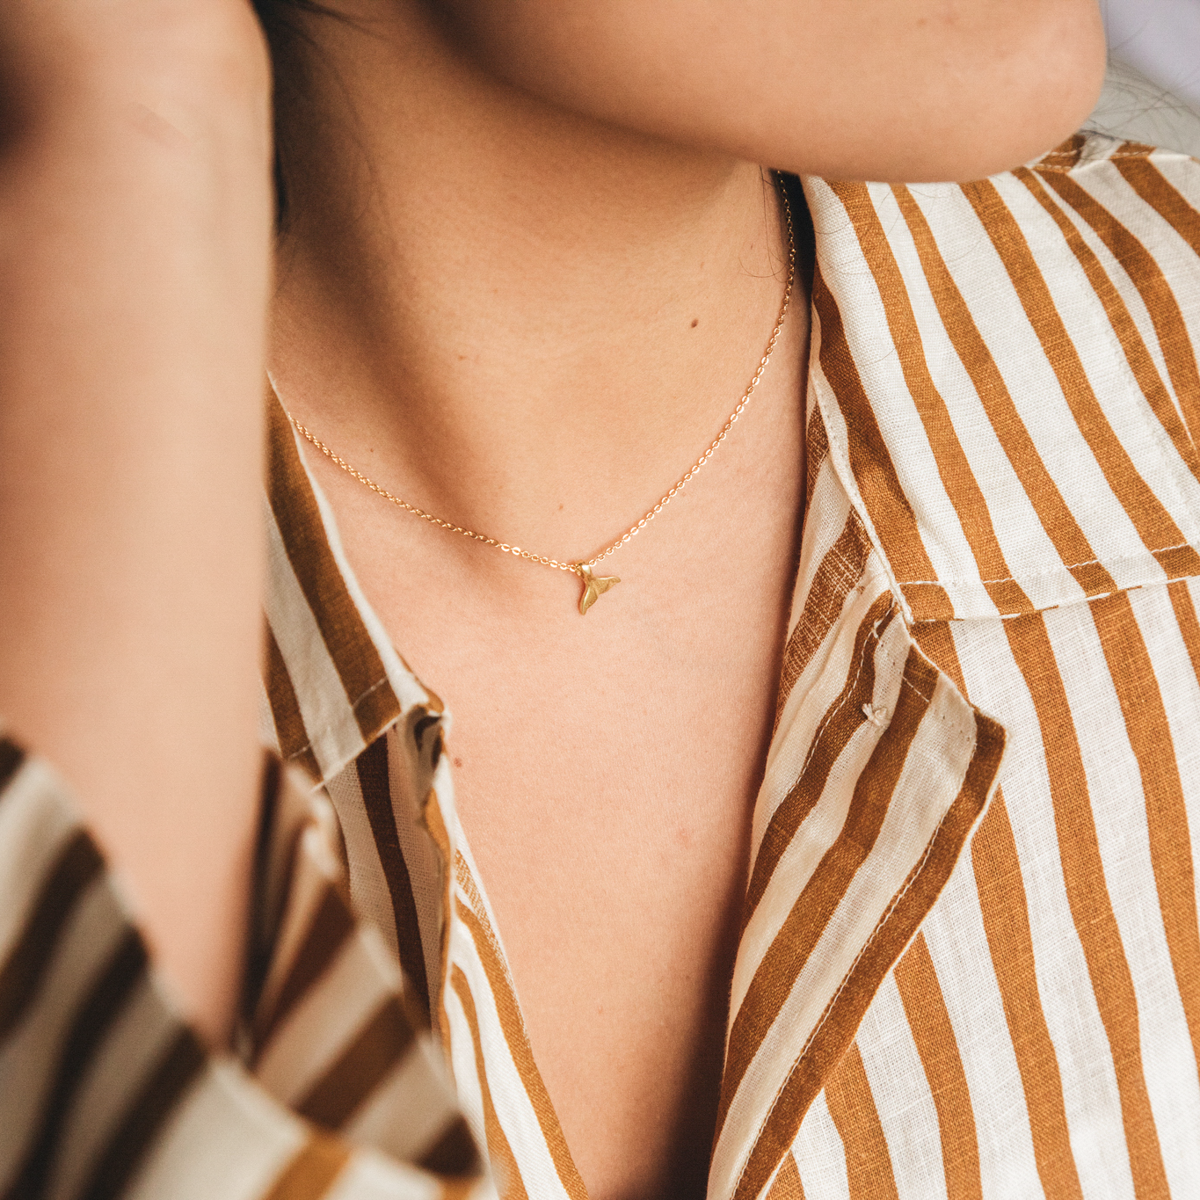 Asri Whale Tail Necklace - Pineapple Island